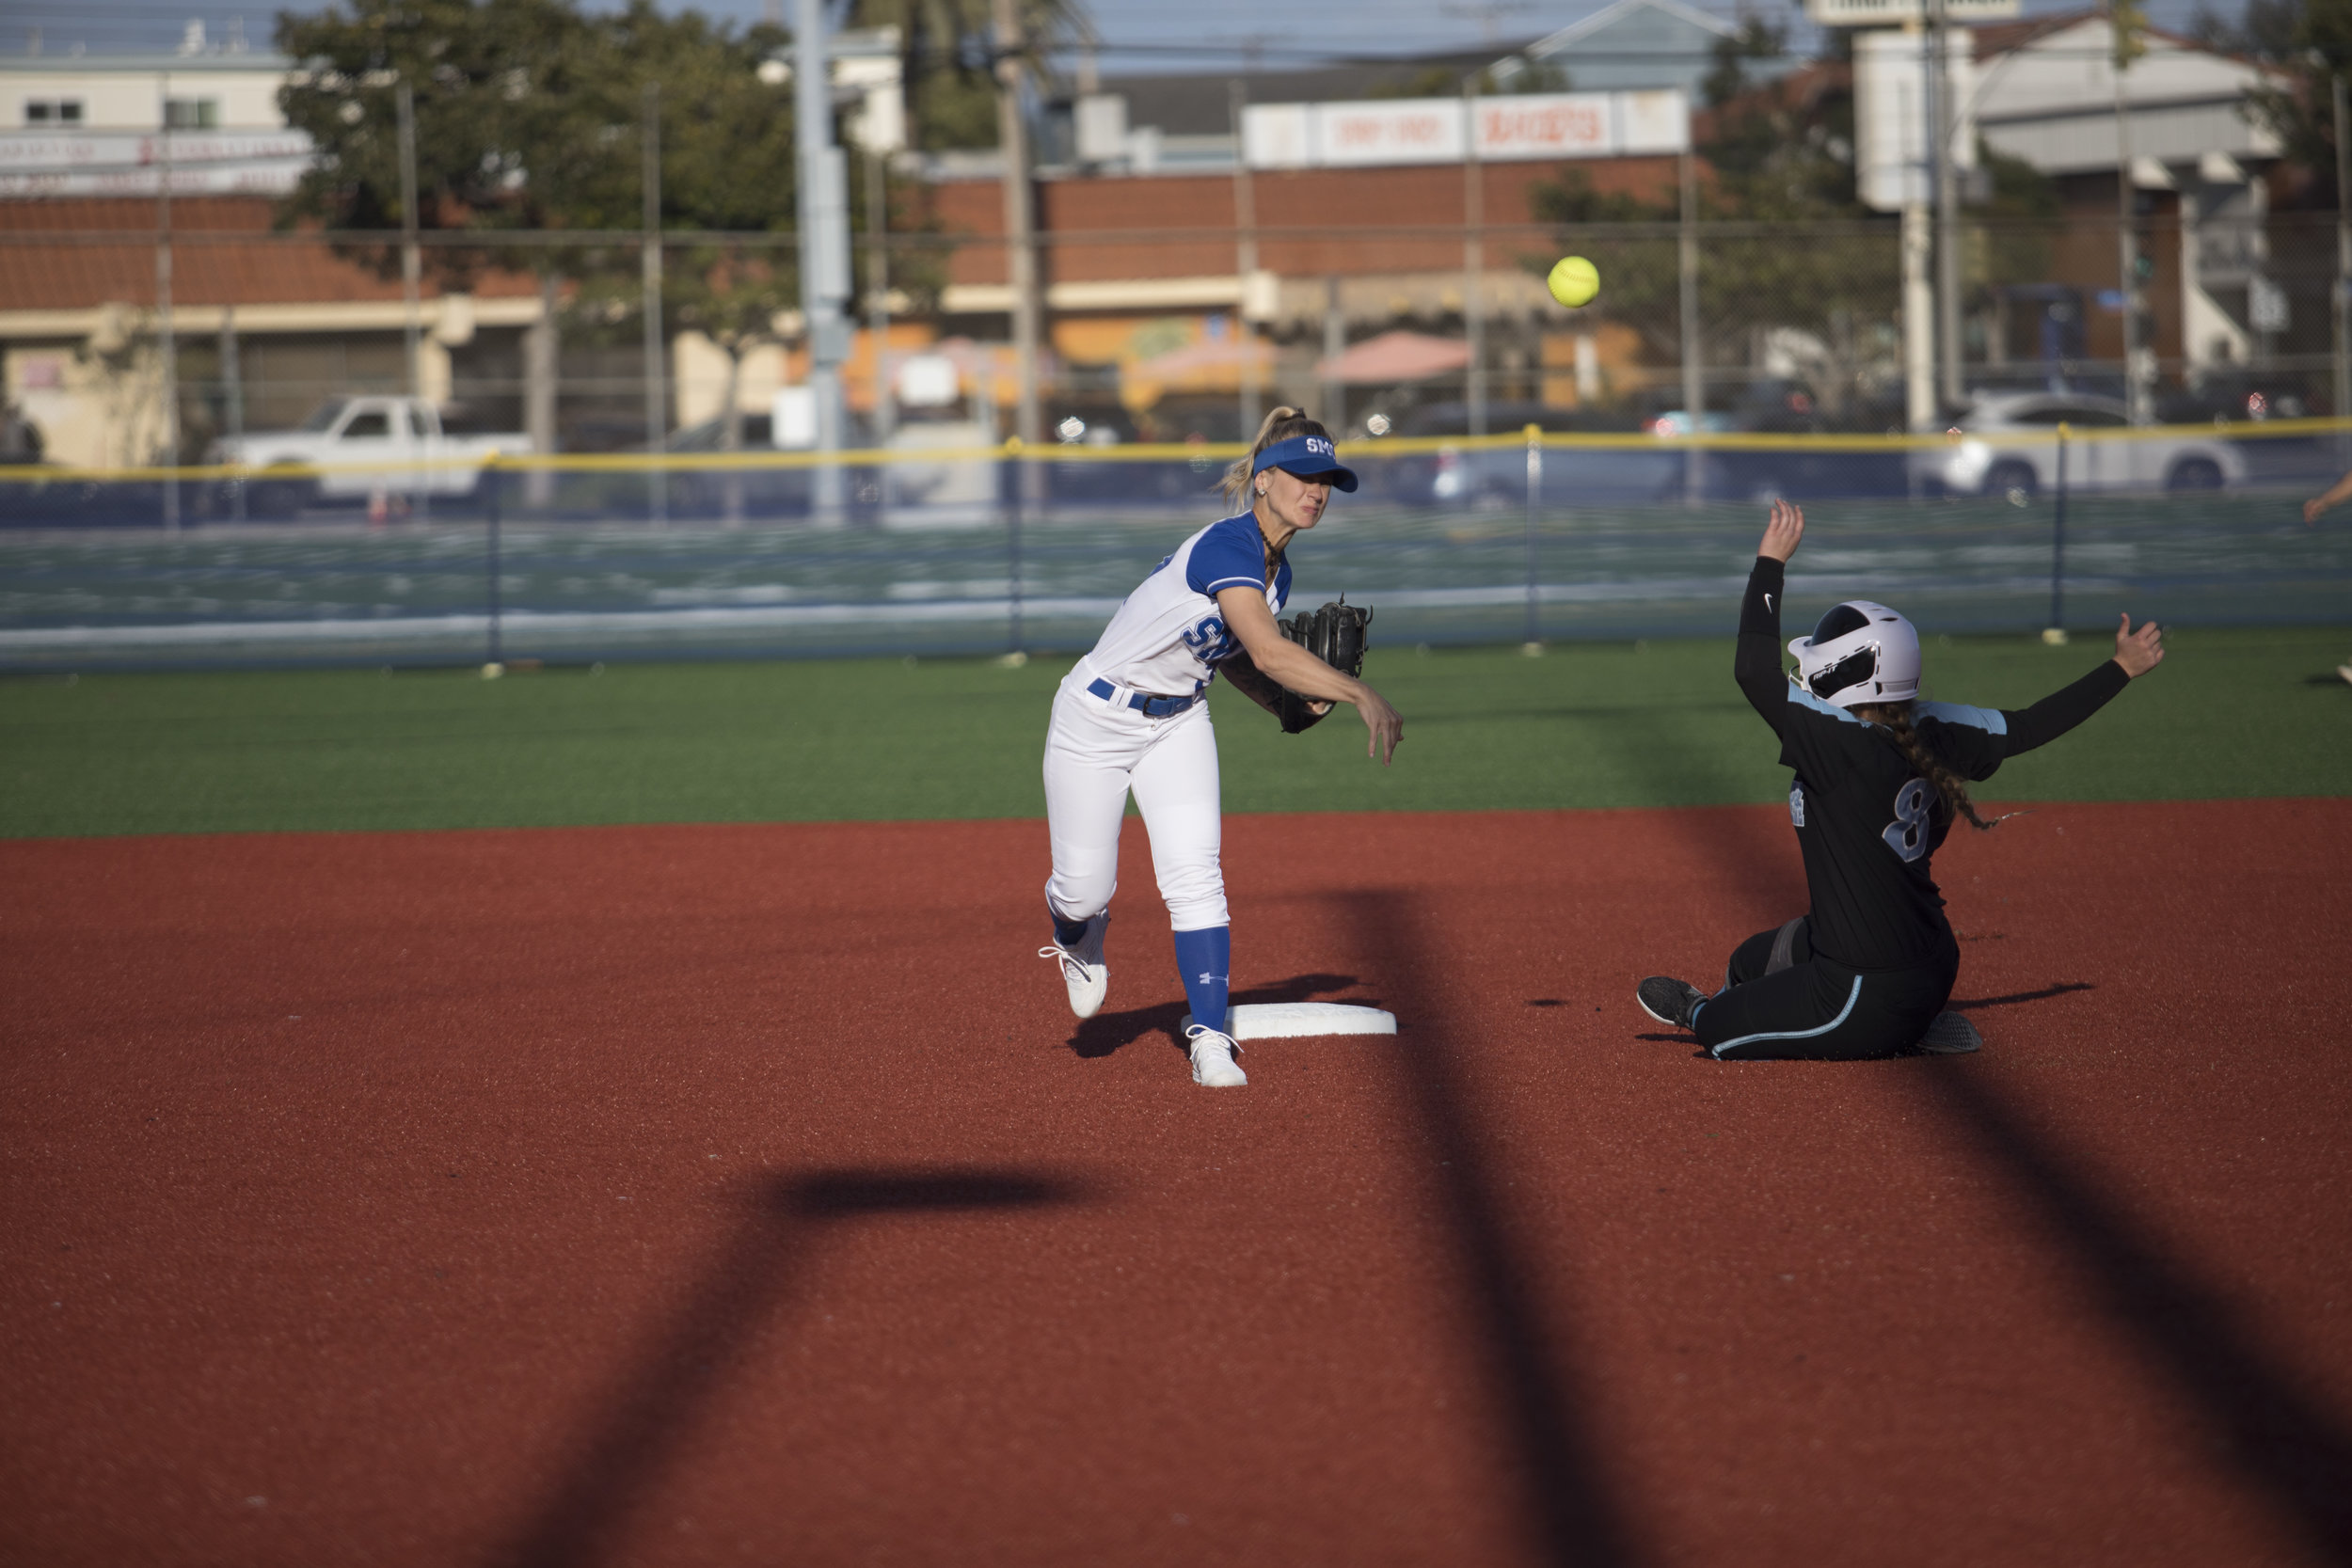 PItcher Ireland Miessau of the Santa Monica Corsairs gets out Victoria Villegas from the Moorpark College Raiders at Santa Monica College on Thursday March 7, 2019. Final score 9-5 for the Corsairs. Photo by Tanya Barcessat